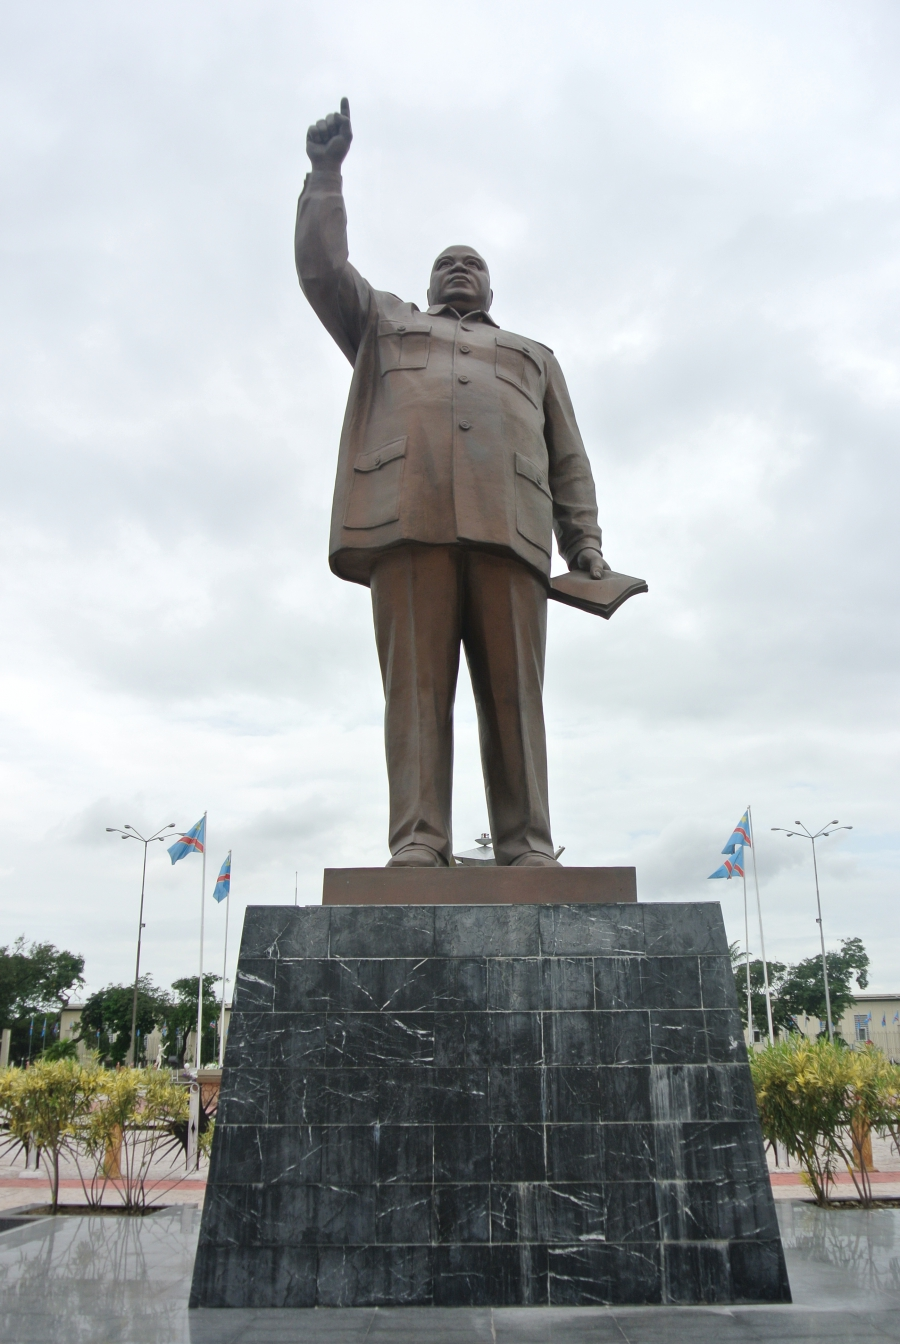 Many say this statue of Laurent Kabila in Kinshasa, DRC looks like he's wearing a suit from the Kim's tailor.